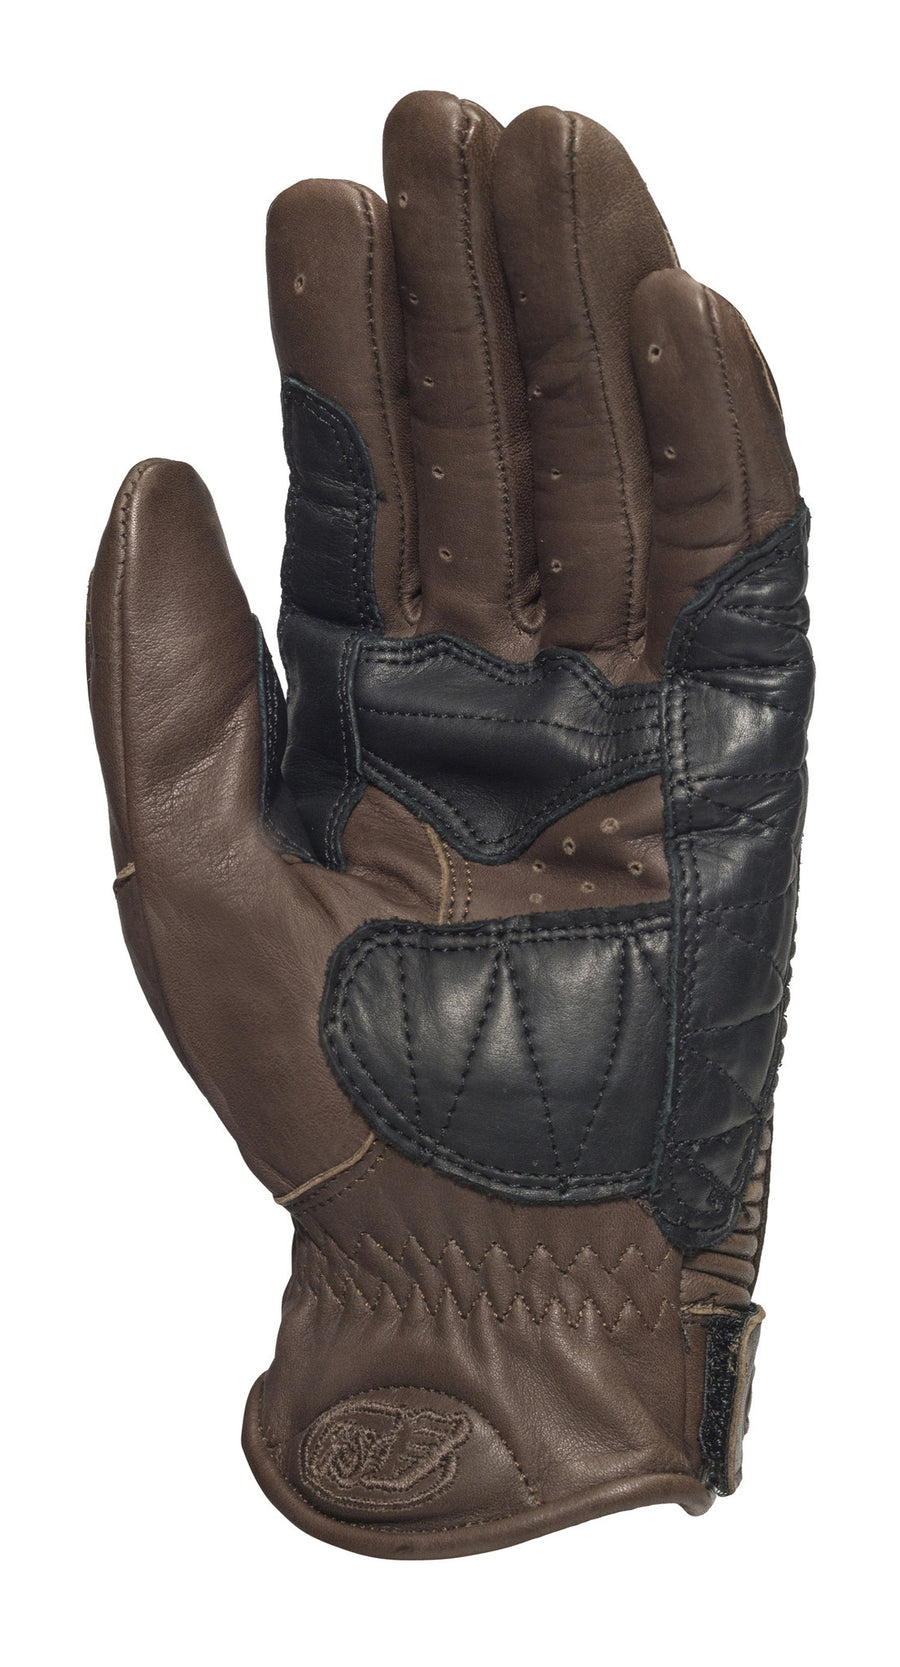 Roland Sands design Dezel Gloves in Tobacco